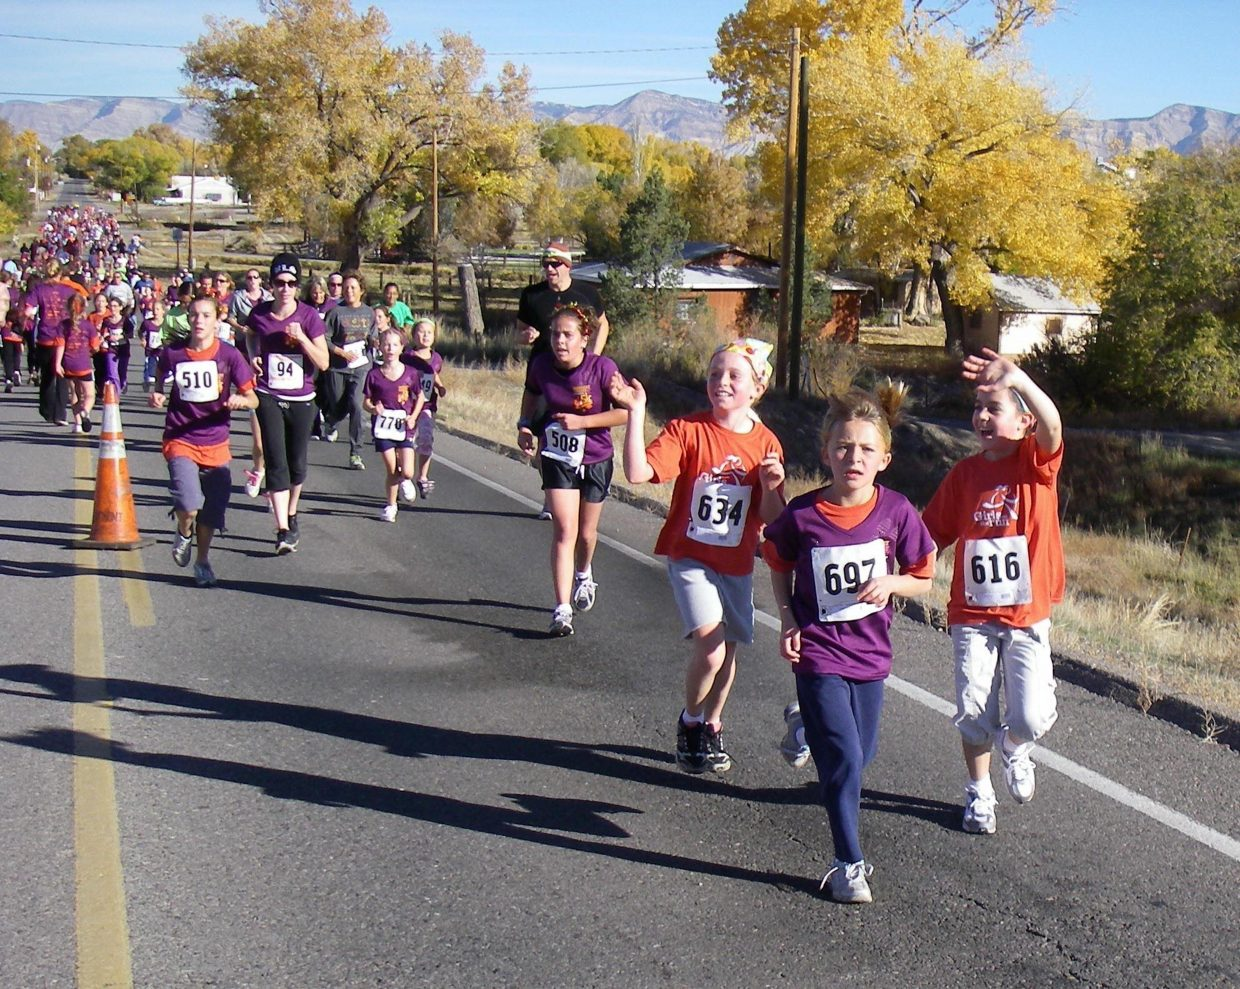 Alexa Paoli, 634, and Lauren Ehrlich, 616, participate in the Harbert Lumber Fall 5K.